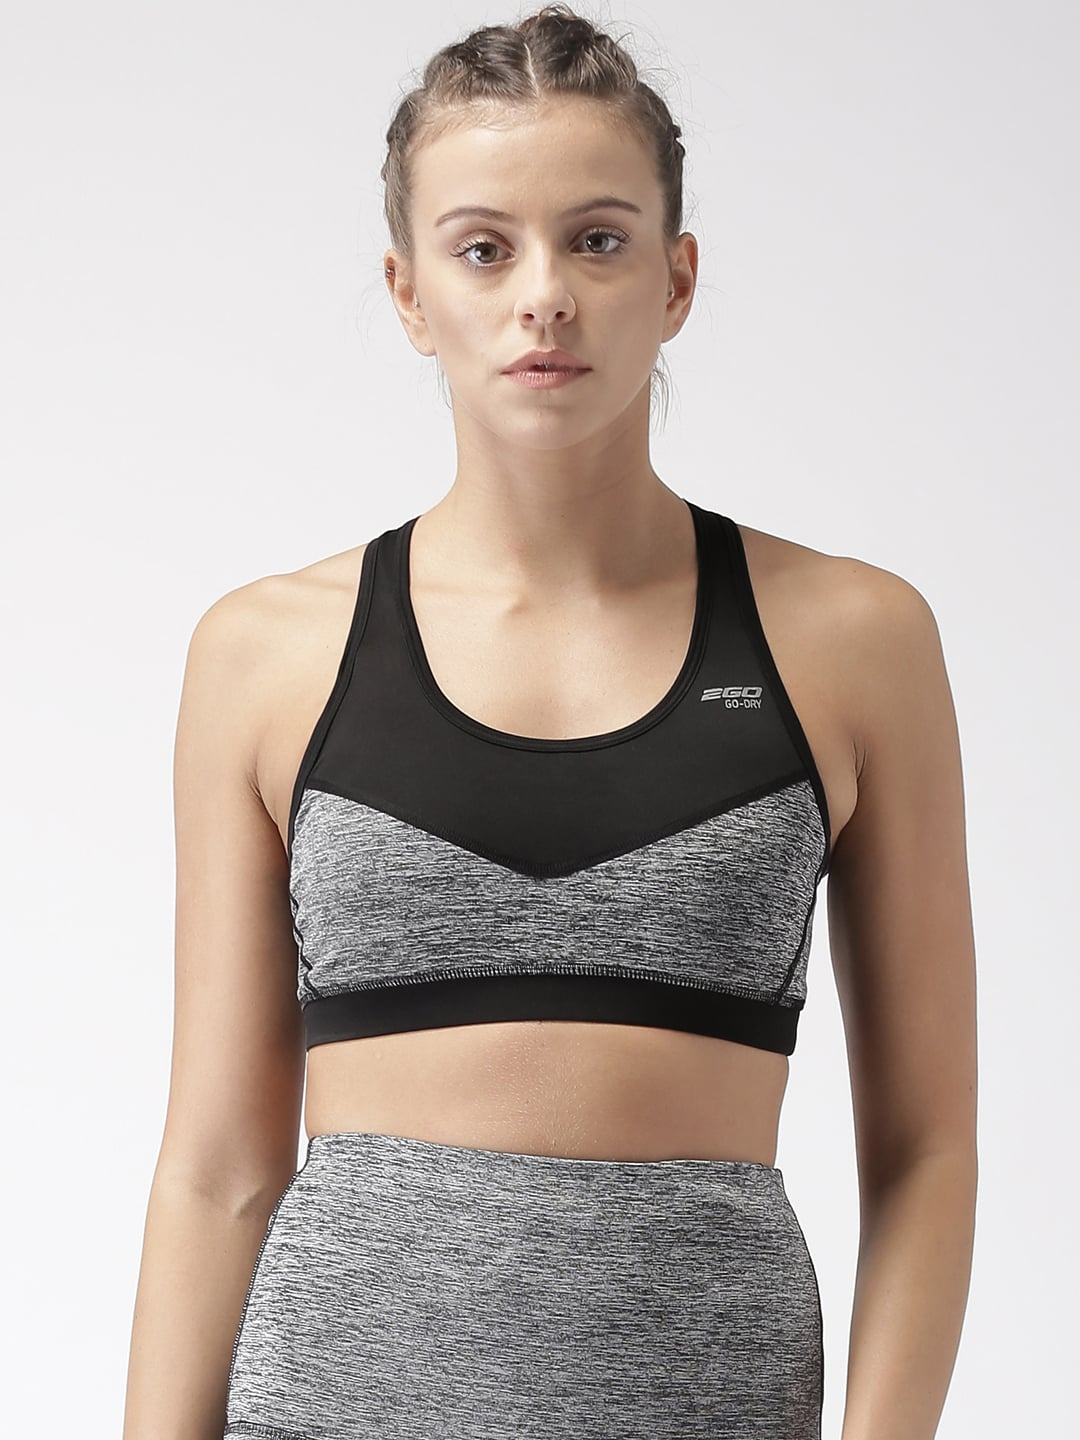 9336d2b0a85a7 Sports Bra Skirts - Buy Sports Bra Skirts online in India